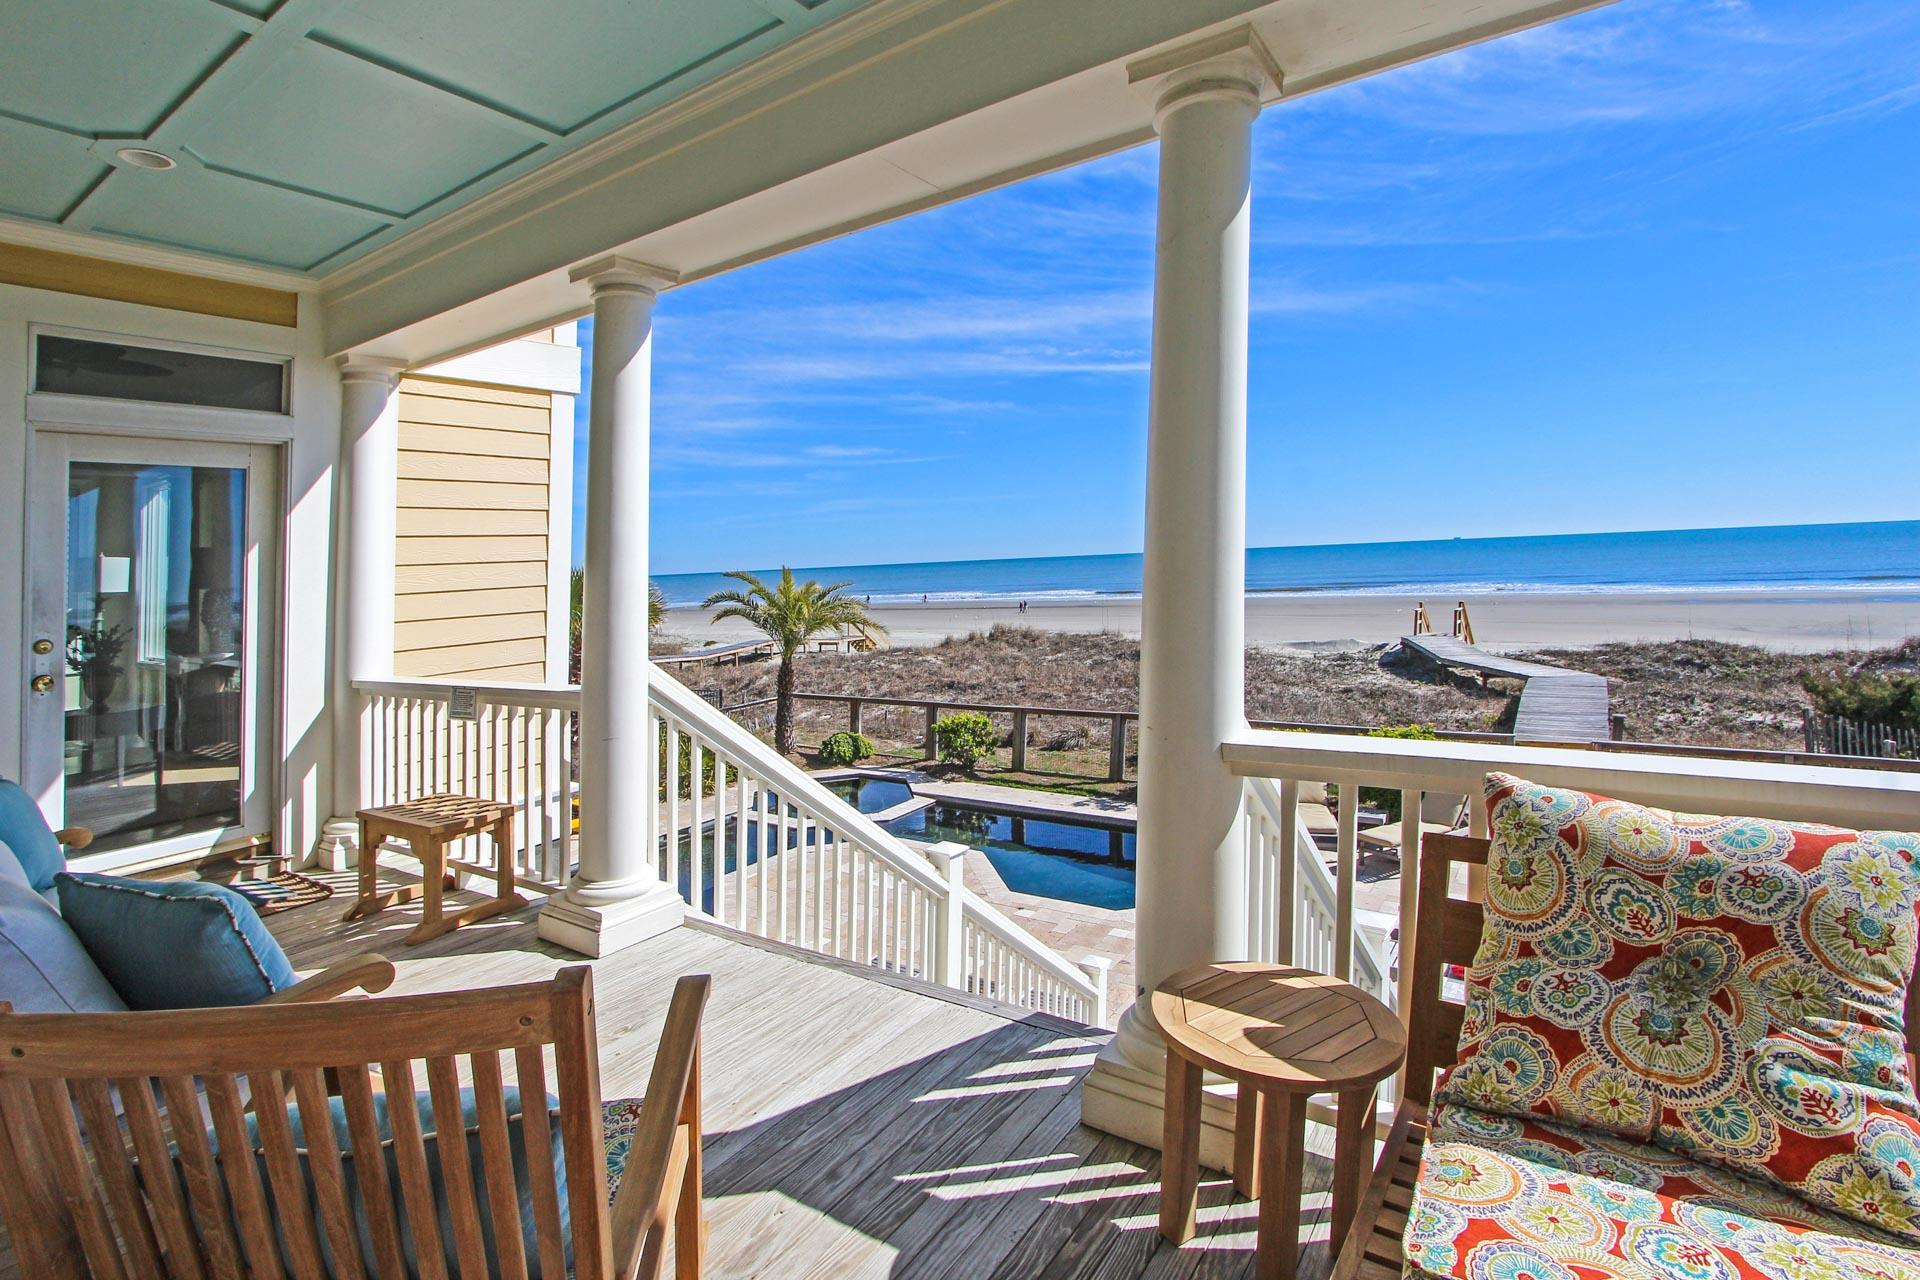 Isle of Palms Homes For Sale - 810 Ocean, Isle of Palms, SC - 7